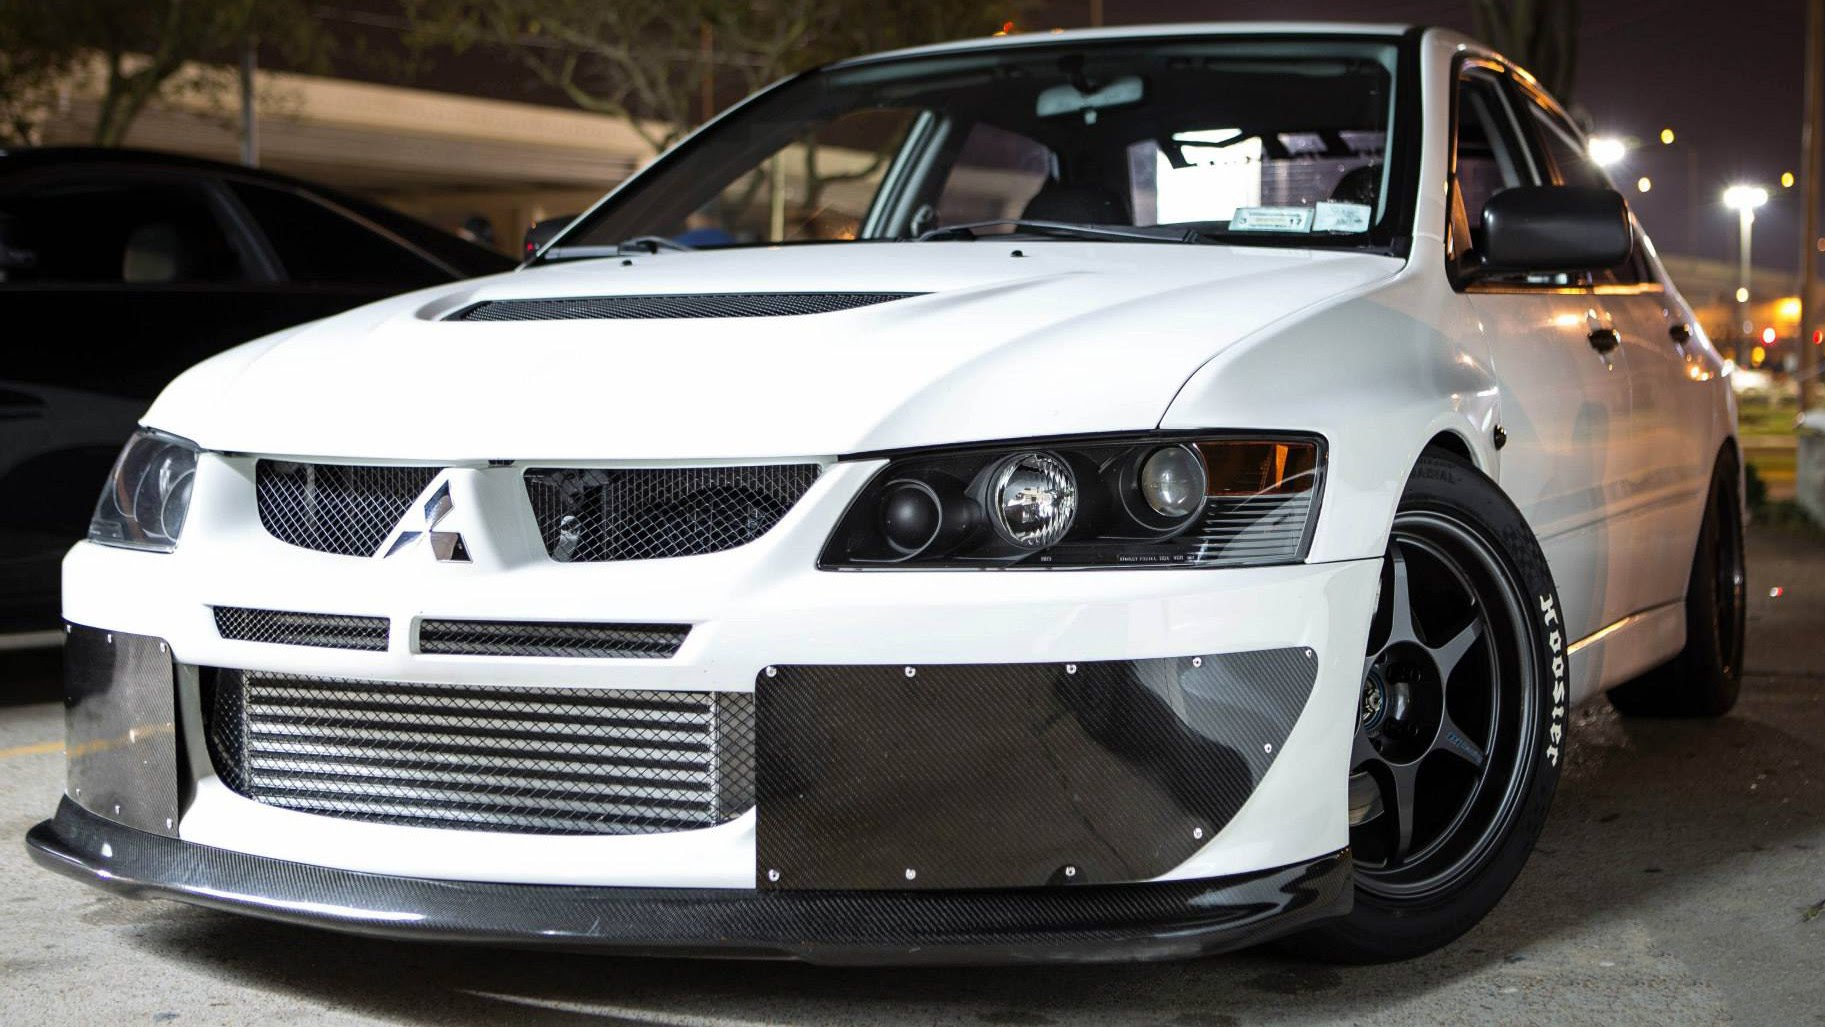 1000hp monster mitsubishi evo takes on a powerful 1300hp corvette in an exciting street race. Black Bedroom Furniture Sets. Home Design Ideas